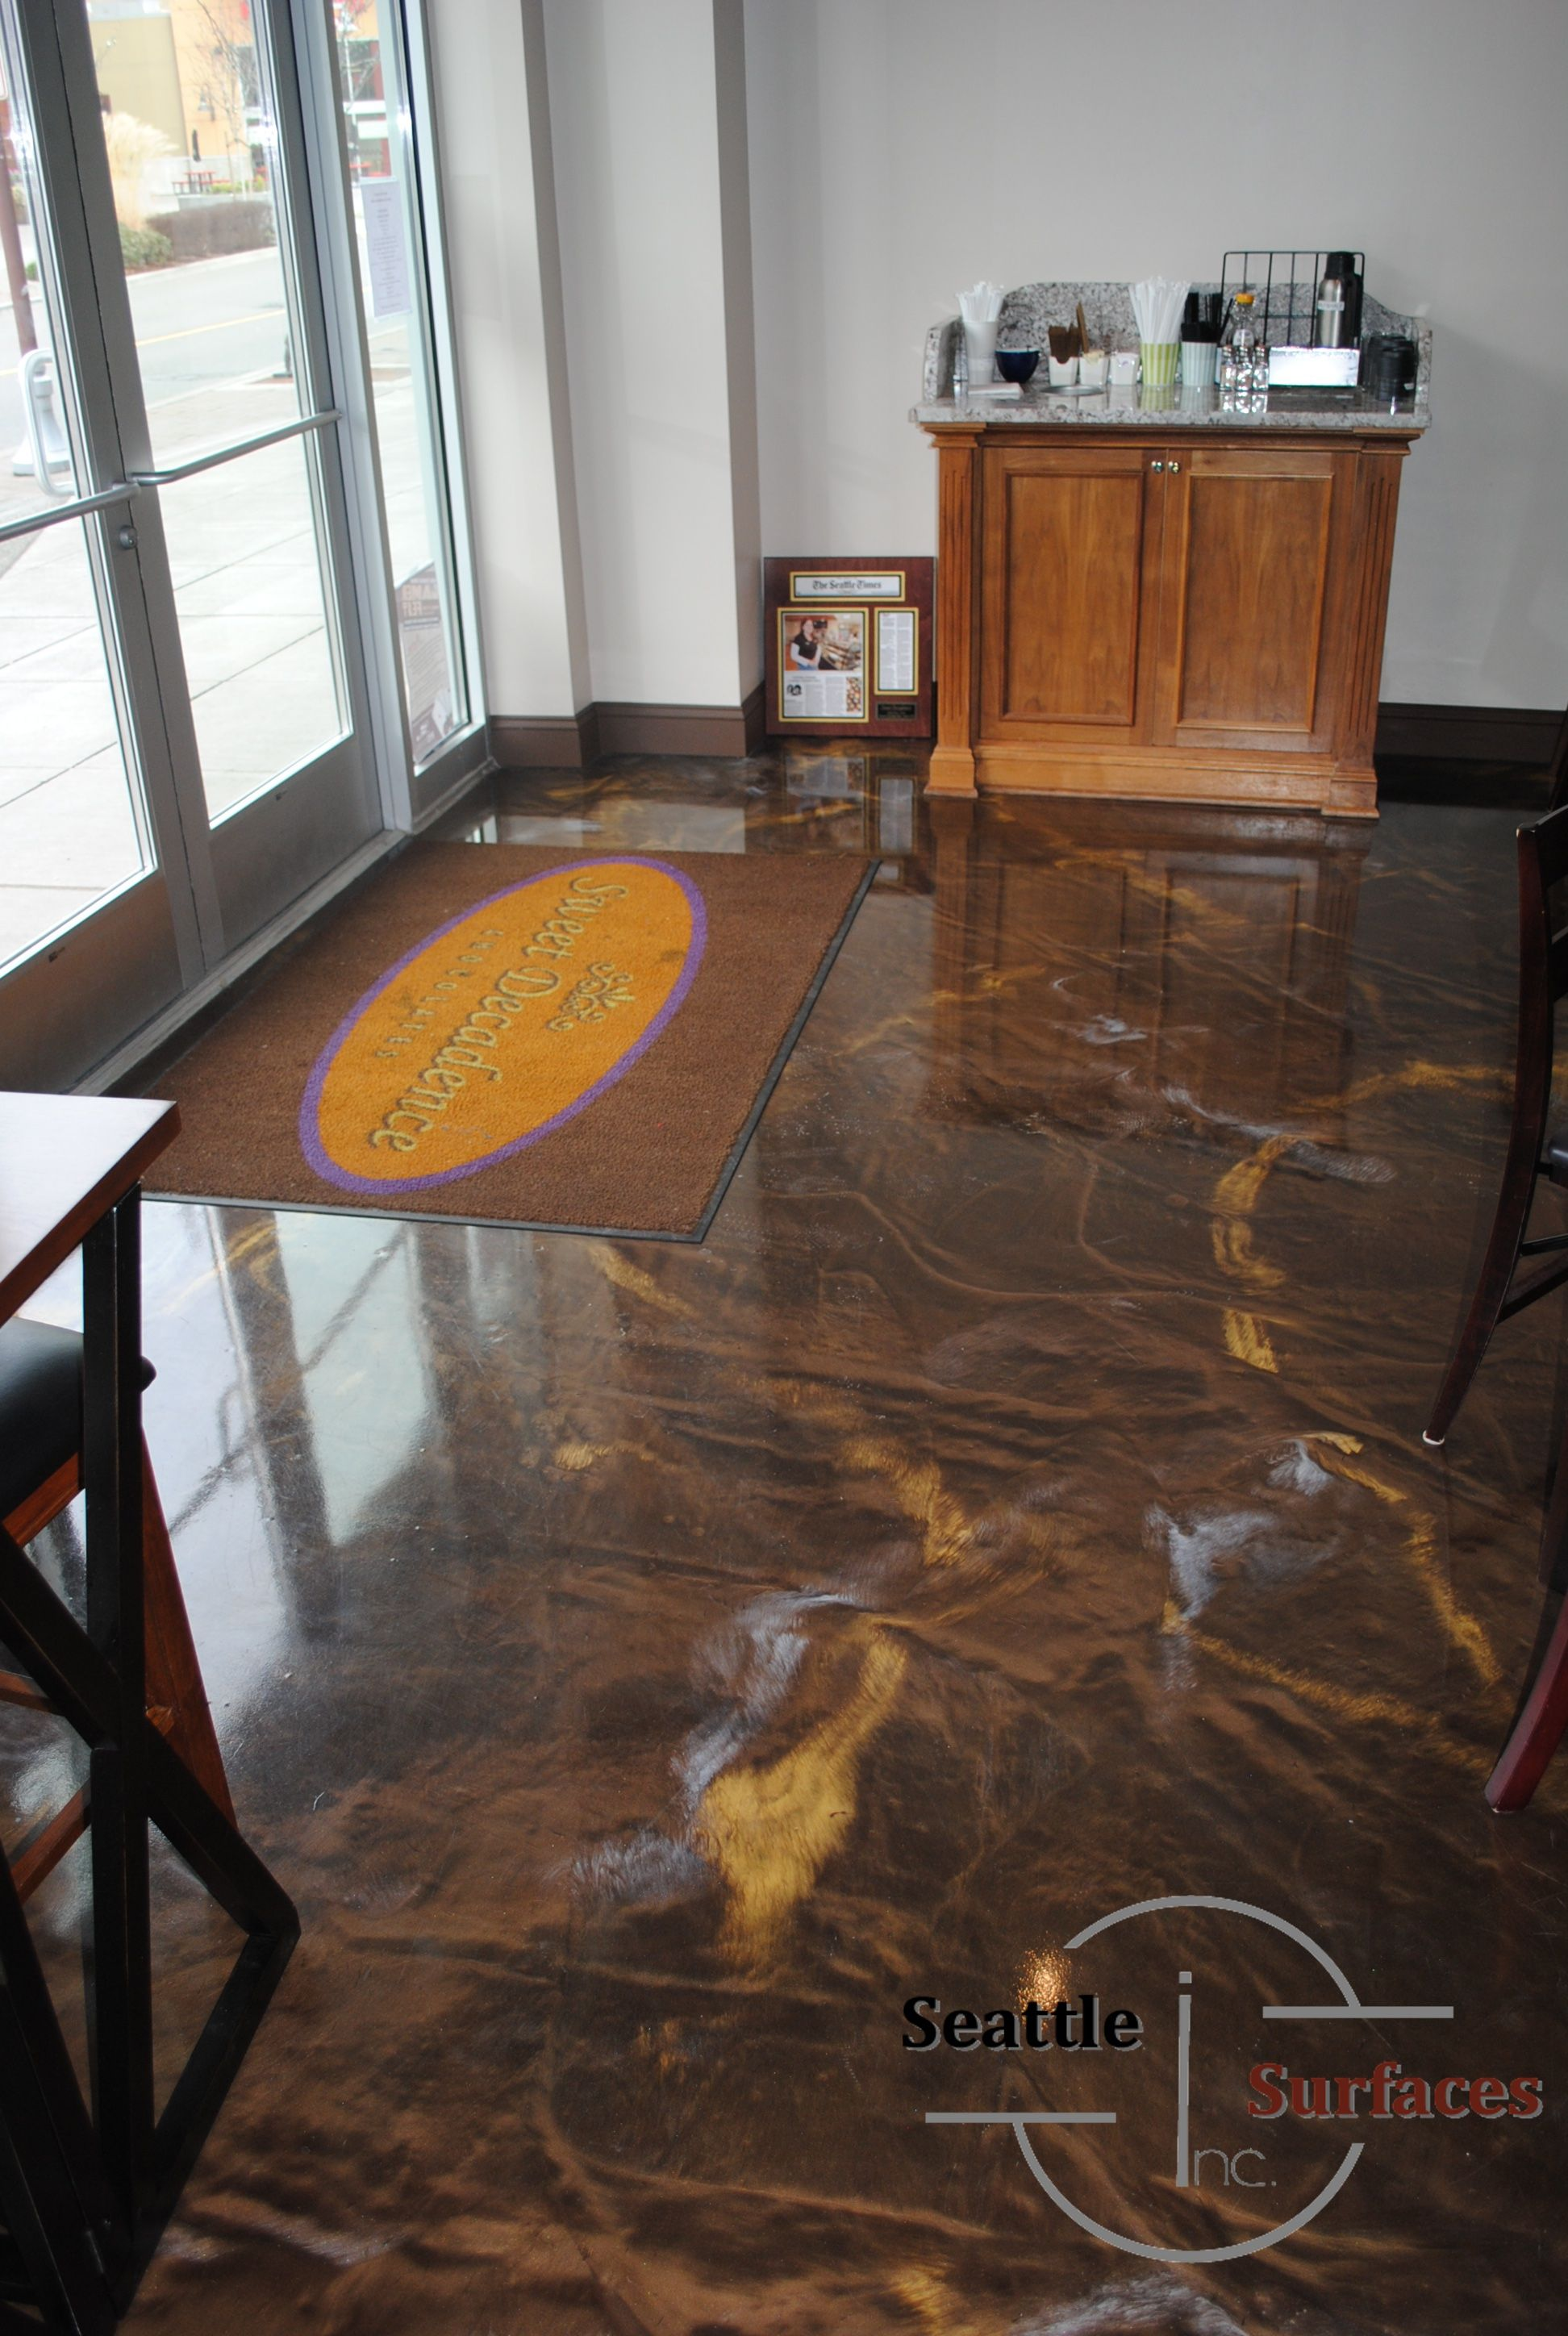 A Designer Metallic Epoxy Floor For A Local Chocolate Shop